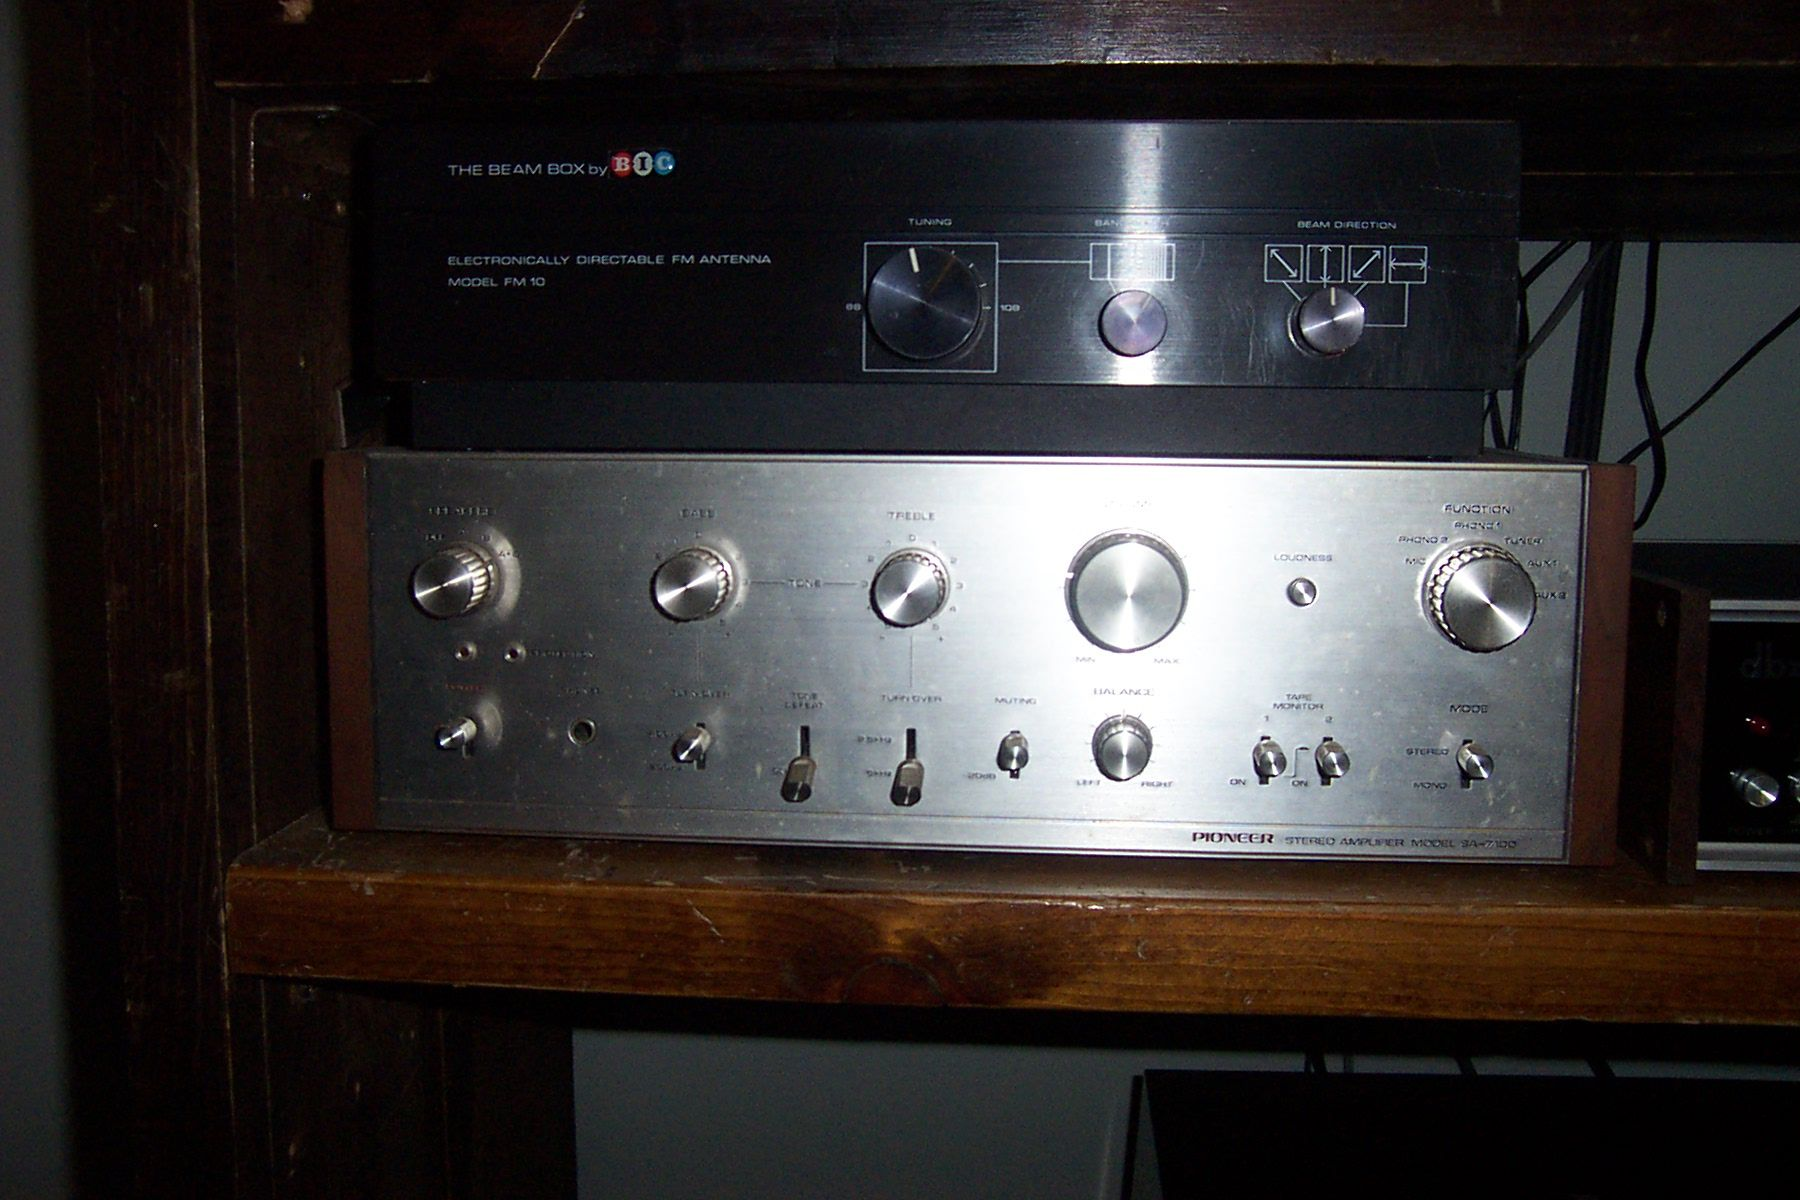 Pioneer SA-600 Amplifier, BIC Beam Box FM antenna | I did have one